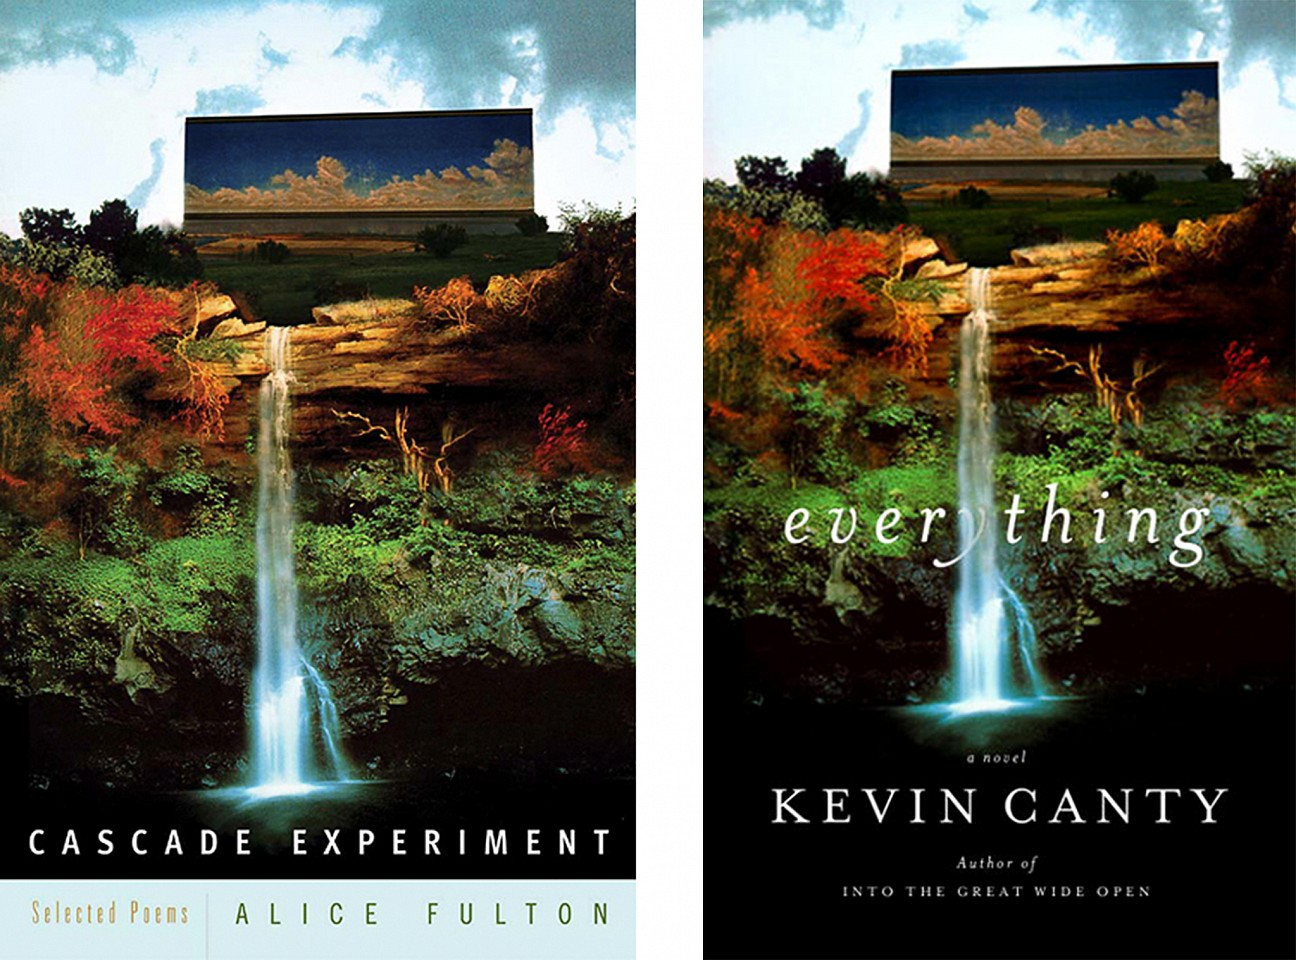 Oliver Wasow, Cascade Experiment / Everything Commercial publication